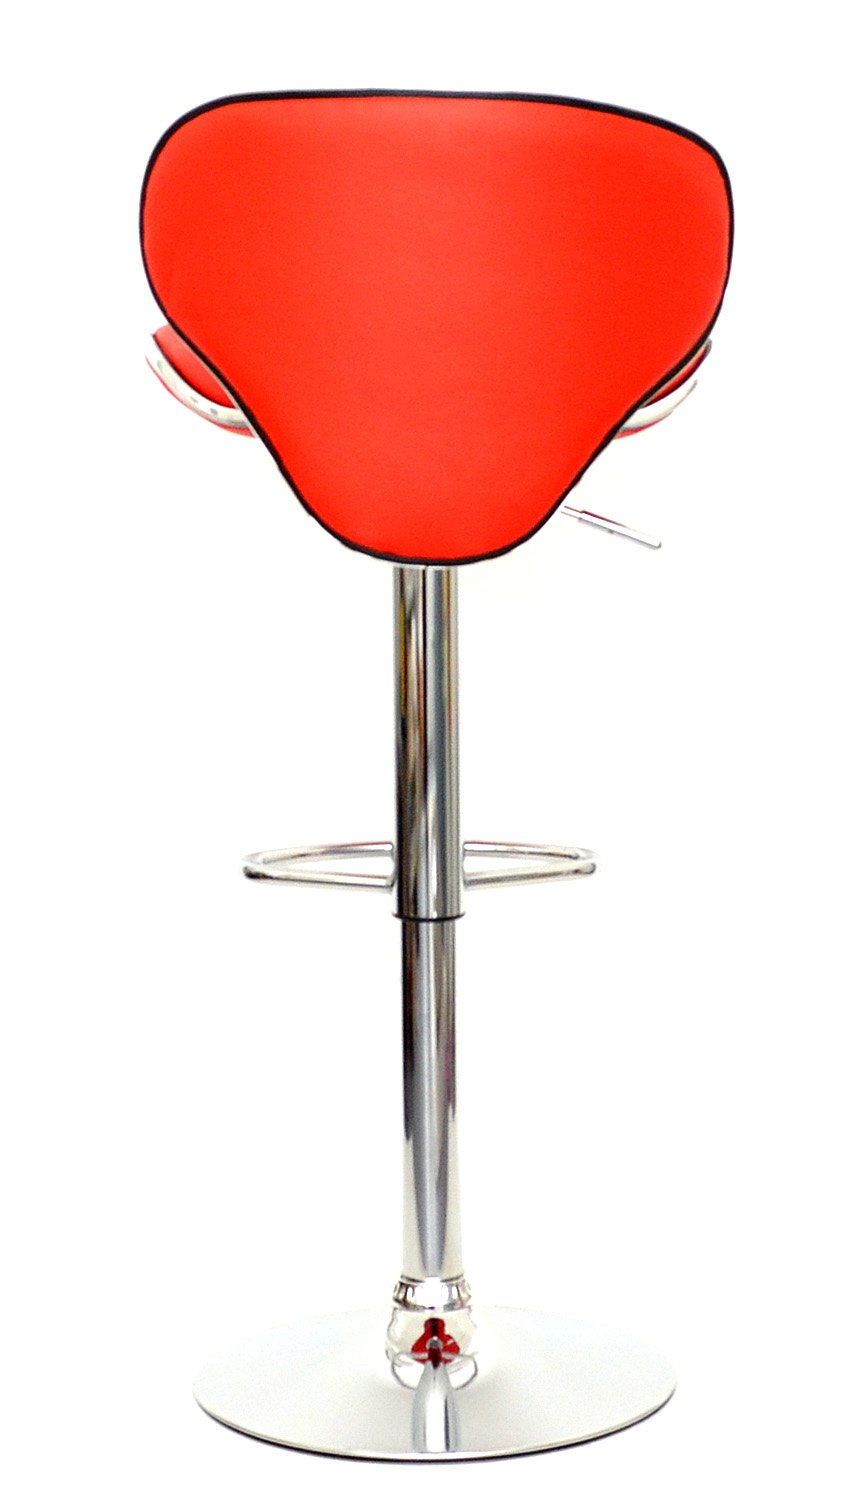 x bar stool barstool bar chair kitchen chair in bright red with chromeand footrest amazoncouk musical instruments.  x bar stool barstool bar chair kitchen chair in bright red with